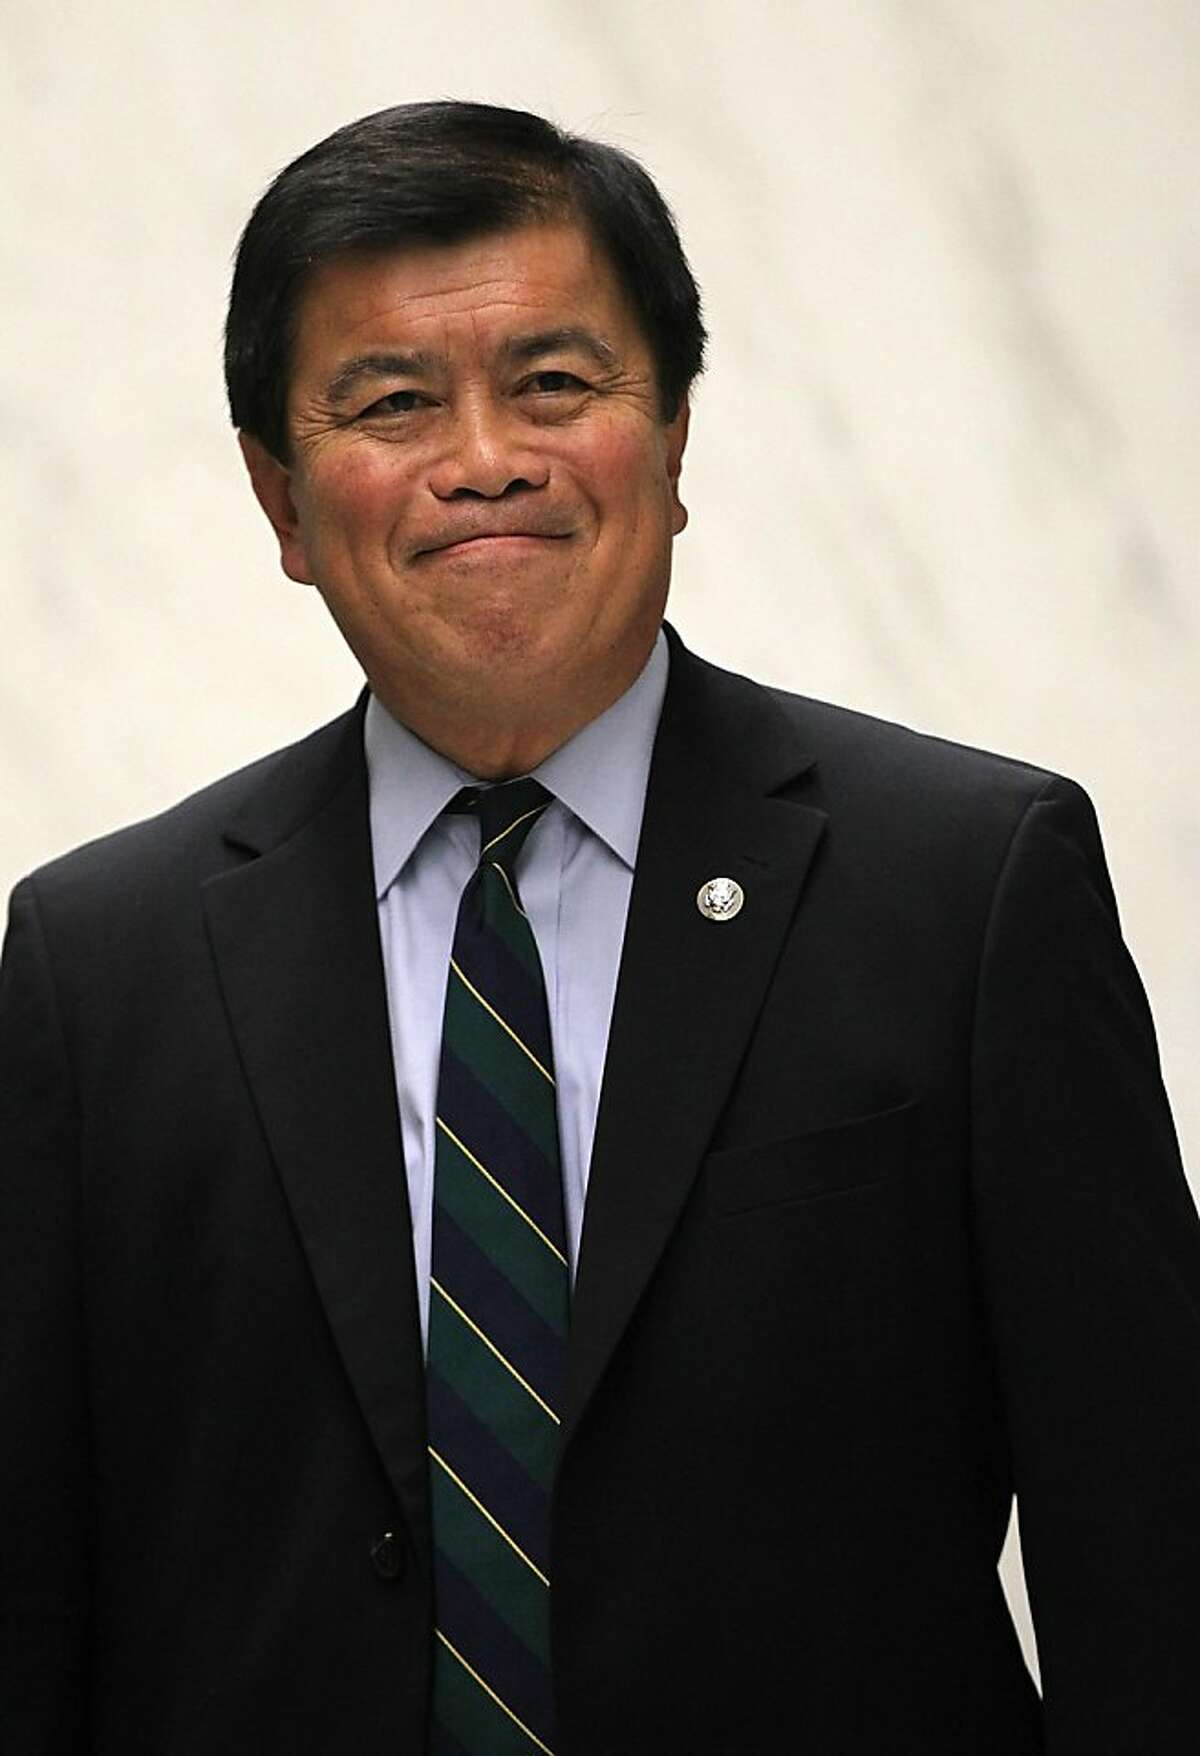 U.S. Rep. David Wu (D-WA) waits for an elevator while he is on his way for a vote on the House floor July 26, 2011 on Capitol Hill in Washington, DC. Wu announced earlier in the day that he will resign from his position after accusations of an